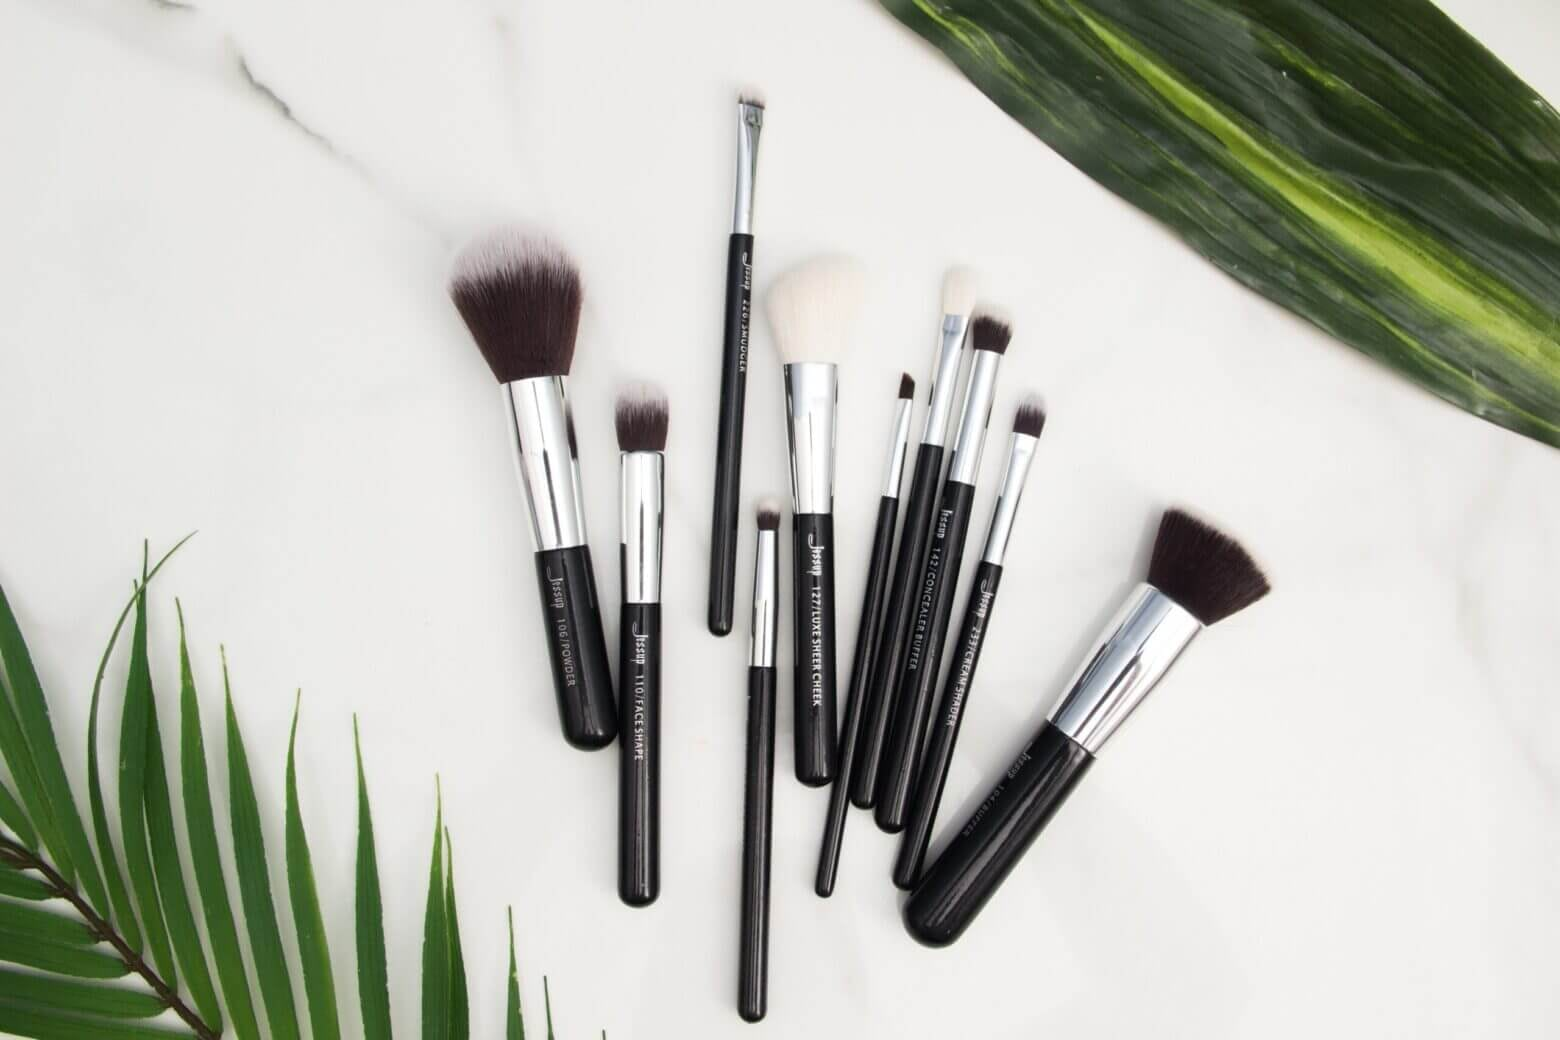 7 Basic Makeup Brushes You Need To Get Started